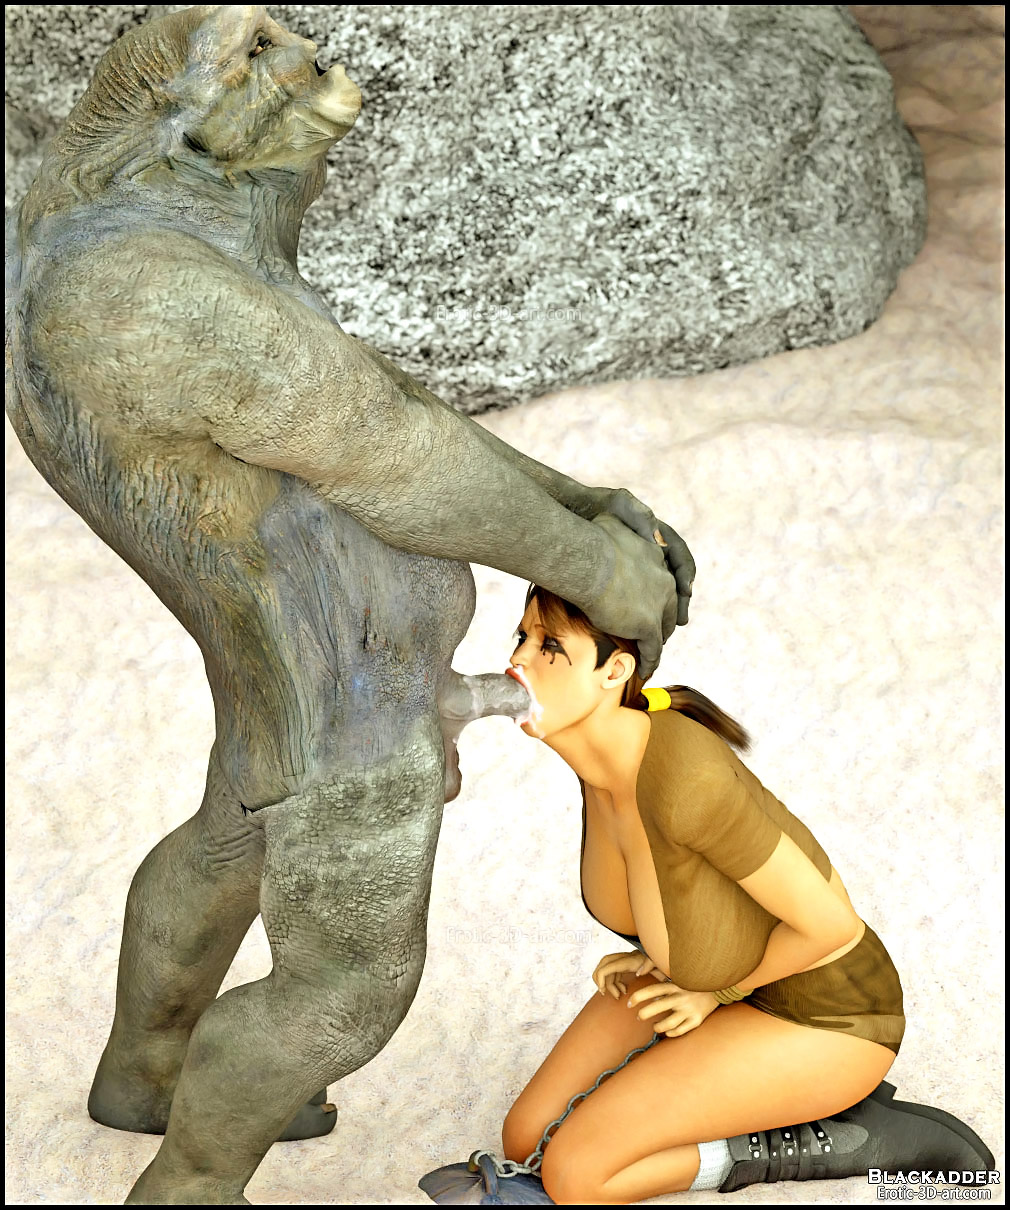 Erotic 3d art lara videos sexy movies